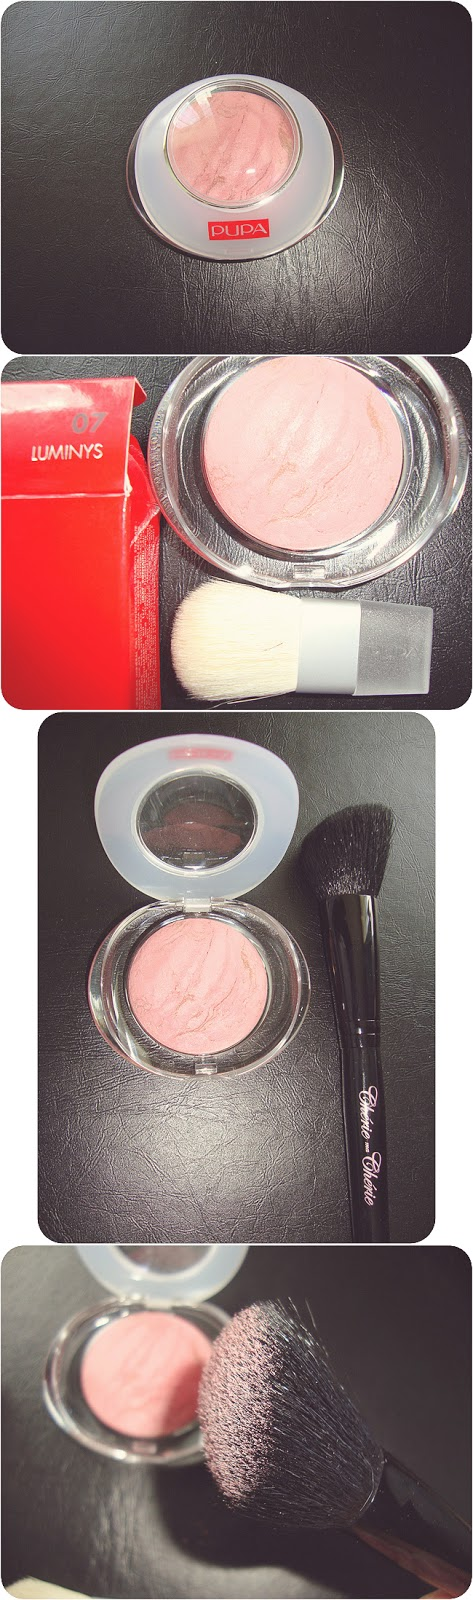 Blusher, PUPA, Reviews, Baked Blush, Luminys Velvety Baked Blush